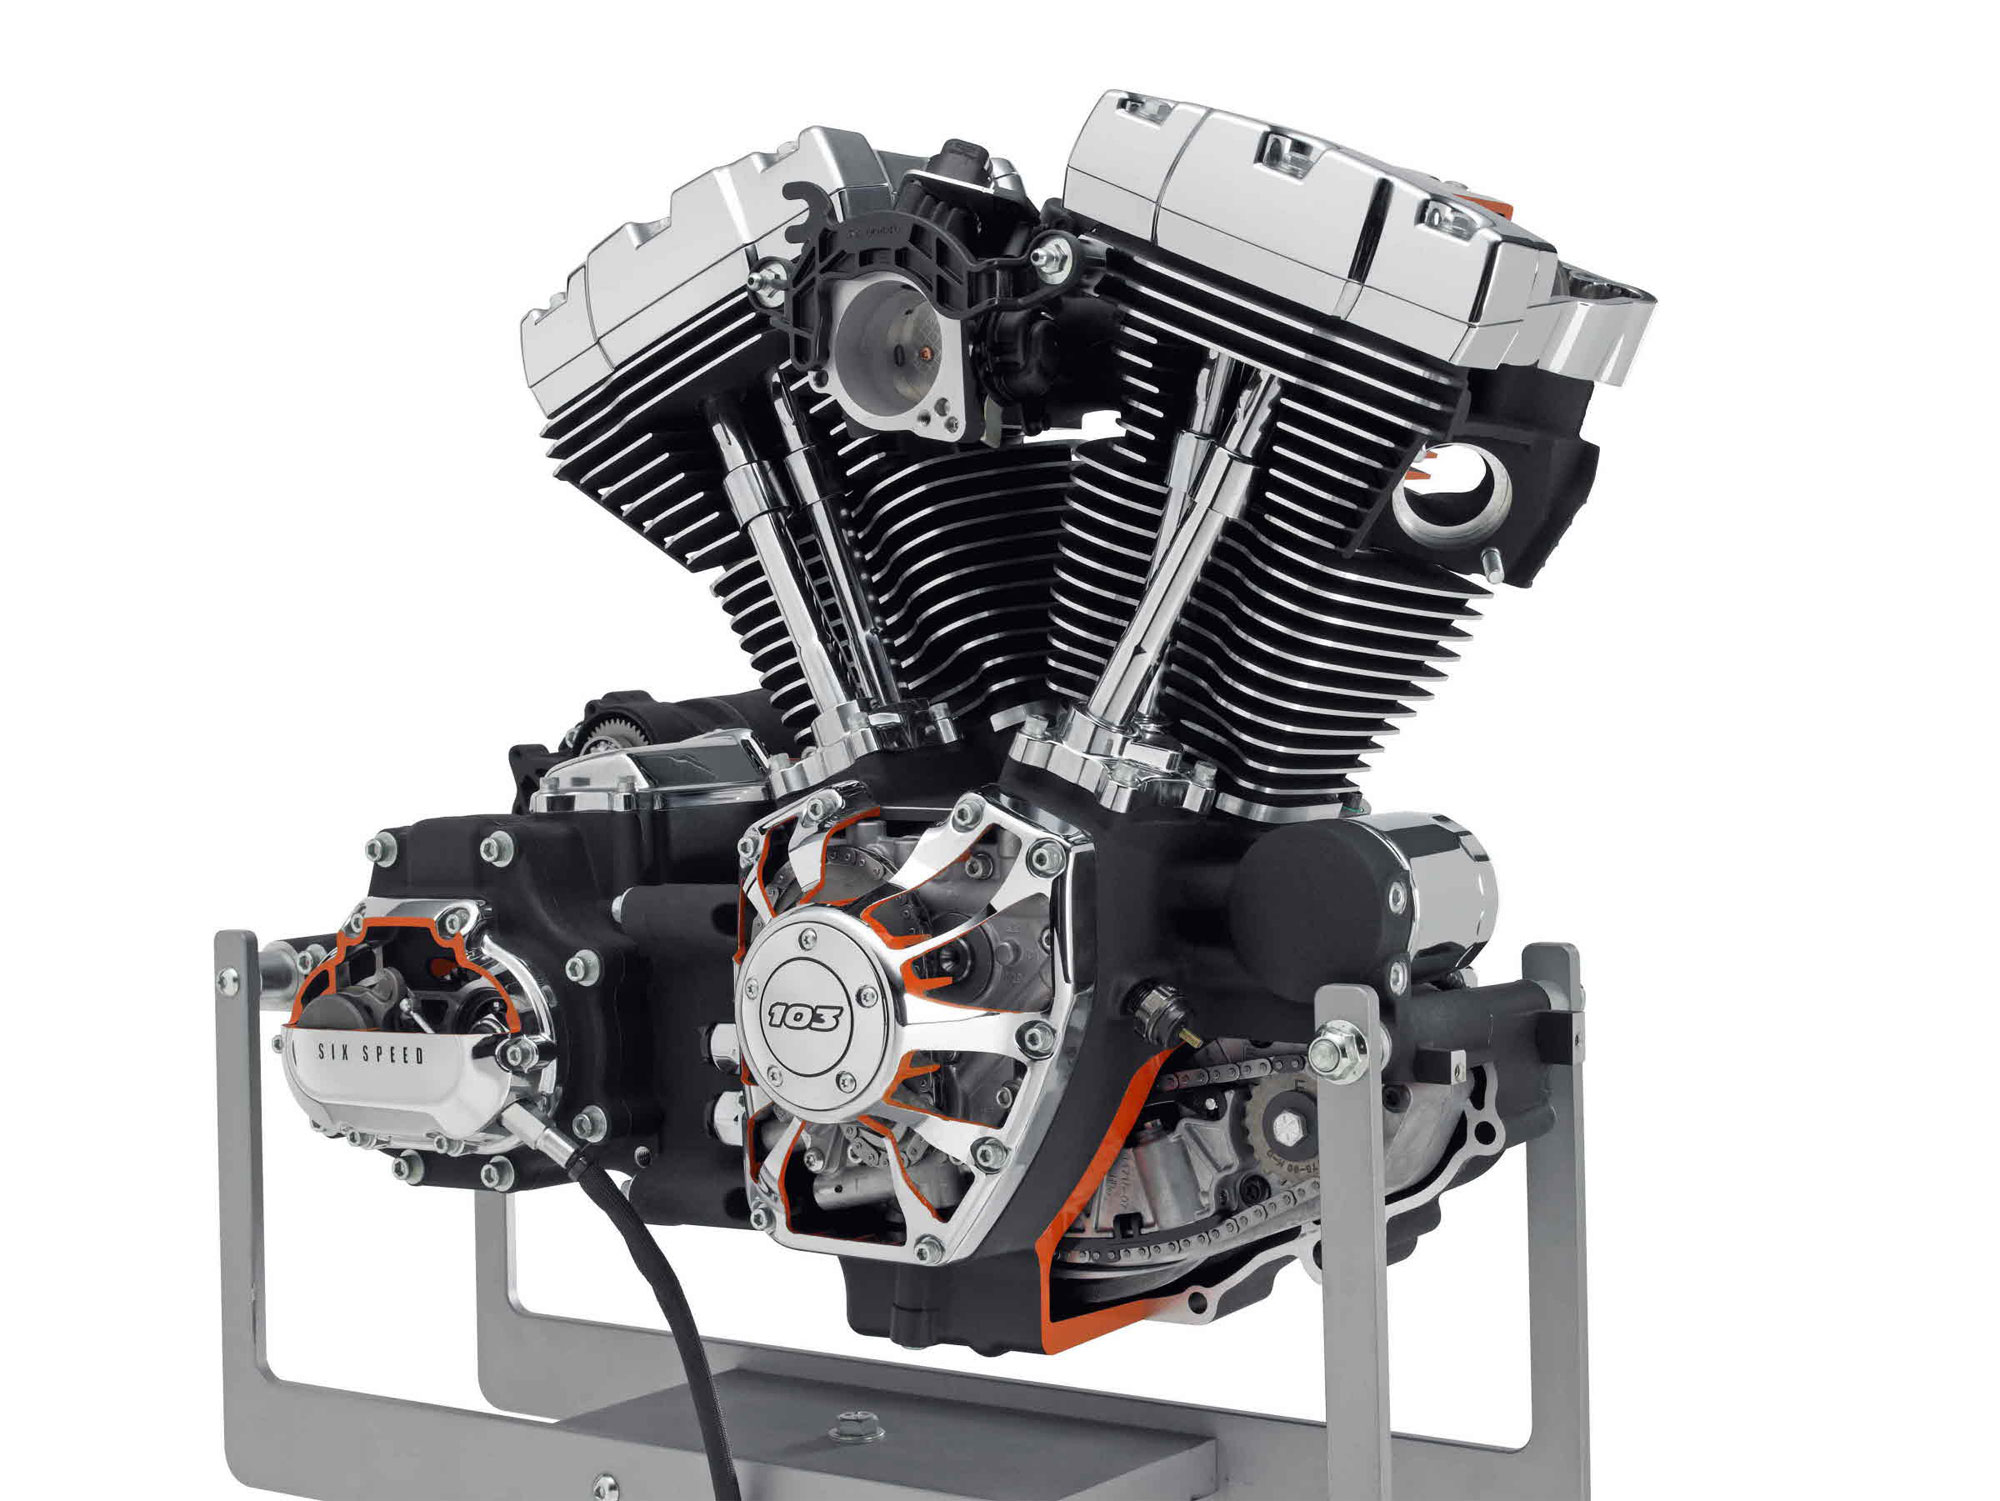 harley davidson twin cam v twin engine review 2012 harley davidson twin cam 103 v twin engine back to 2012 harley davidson motorcycle model review page